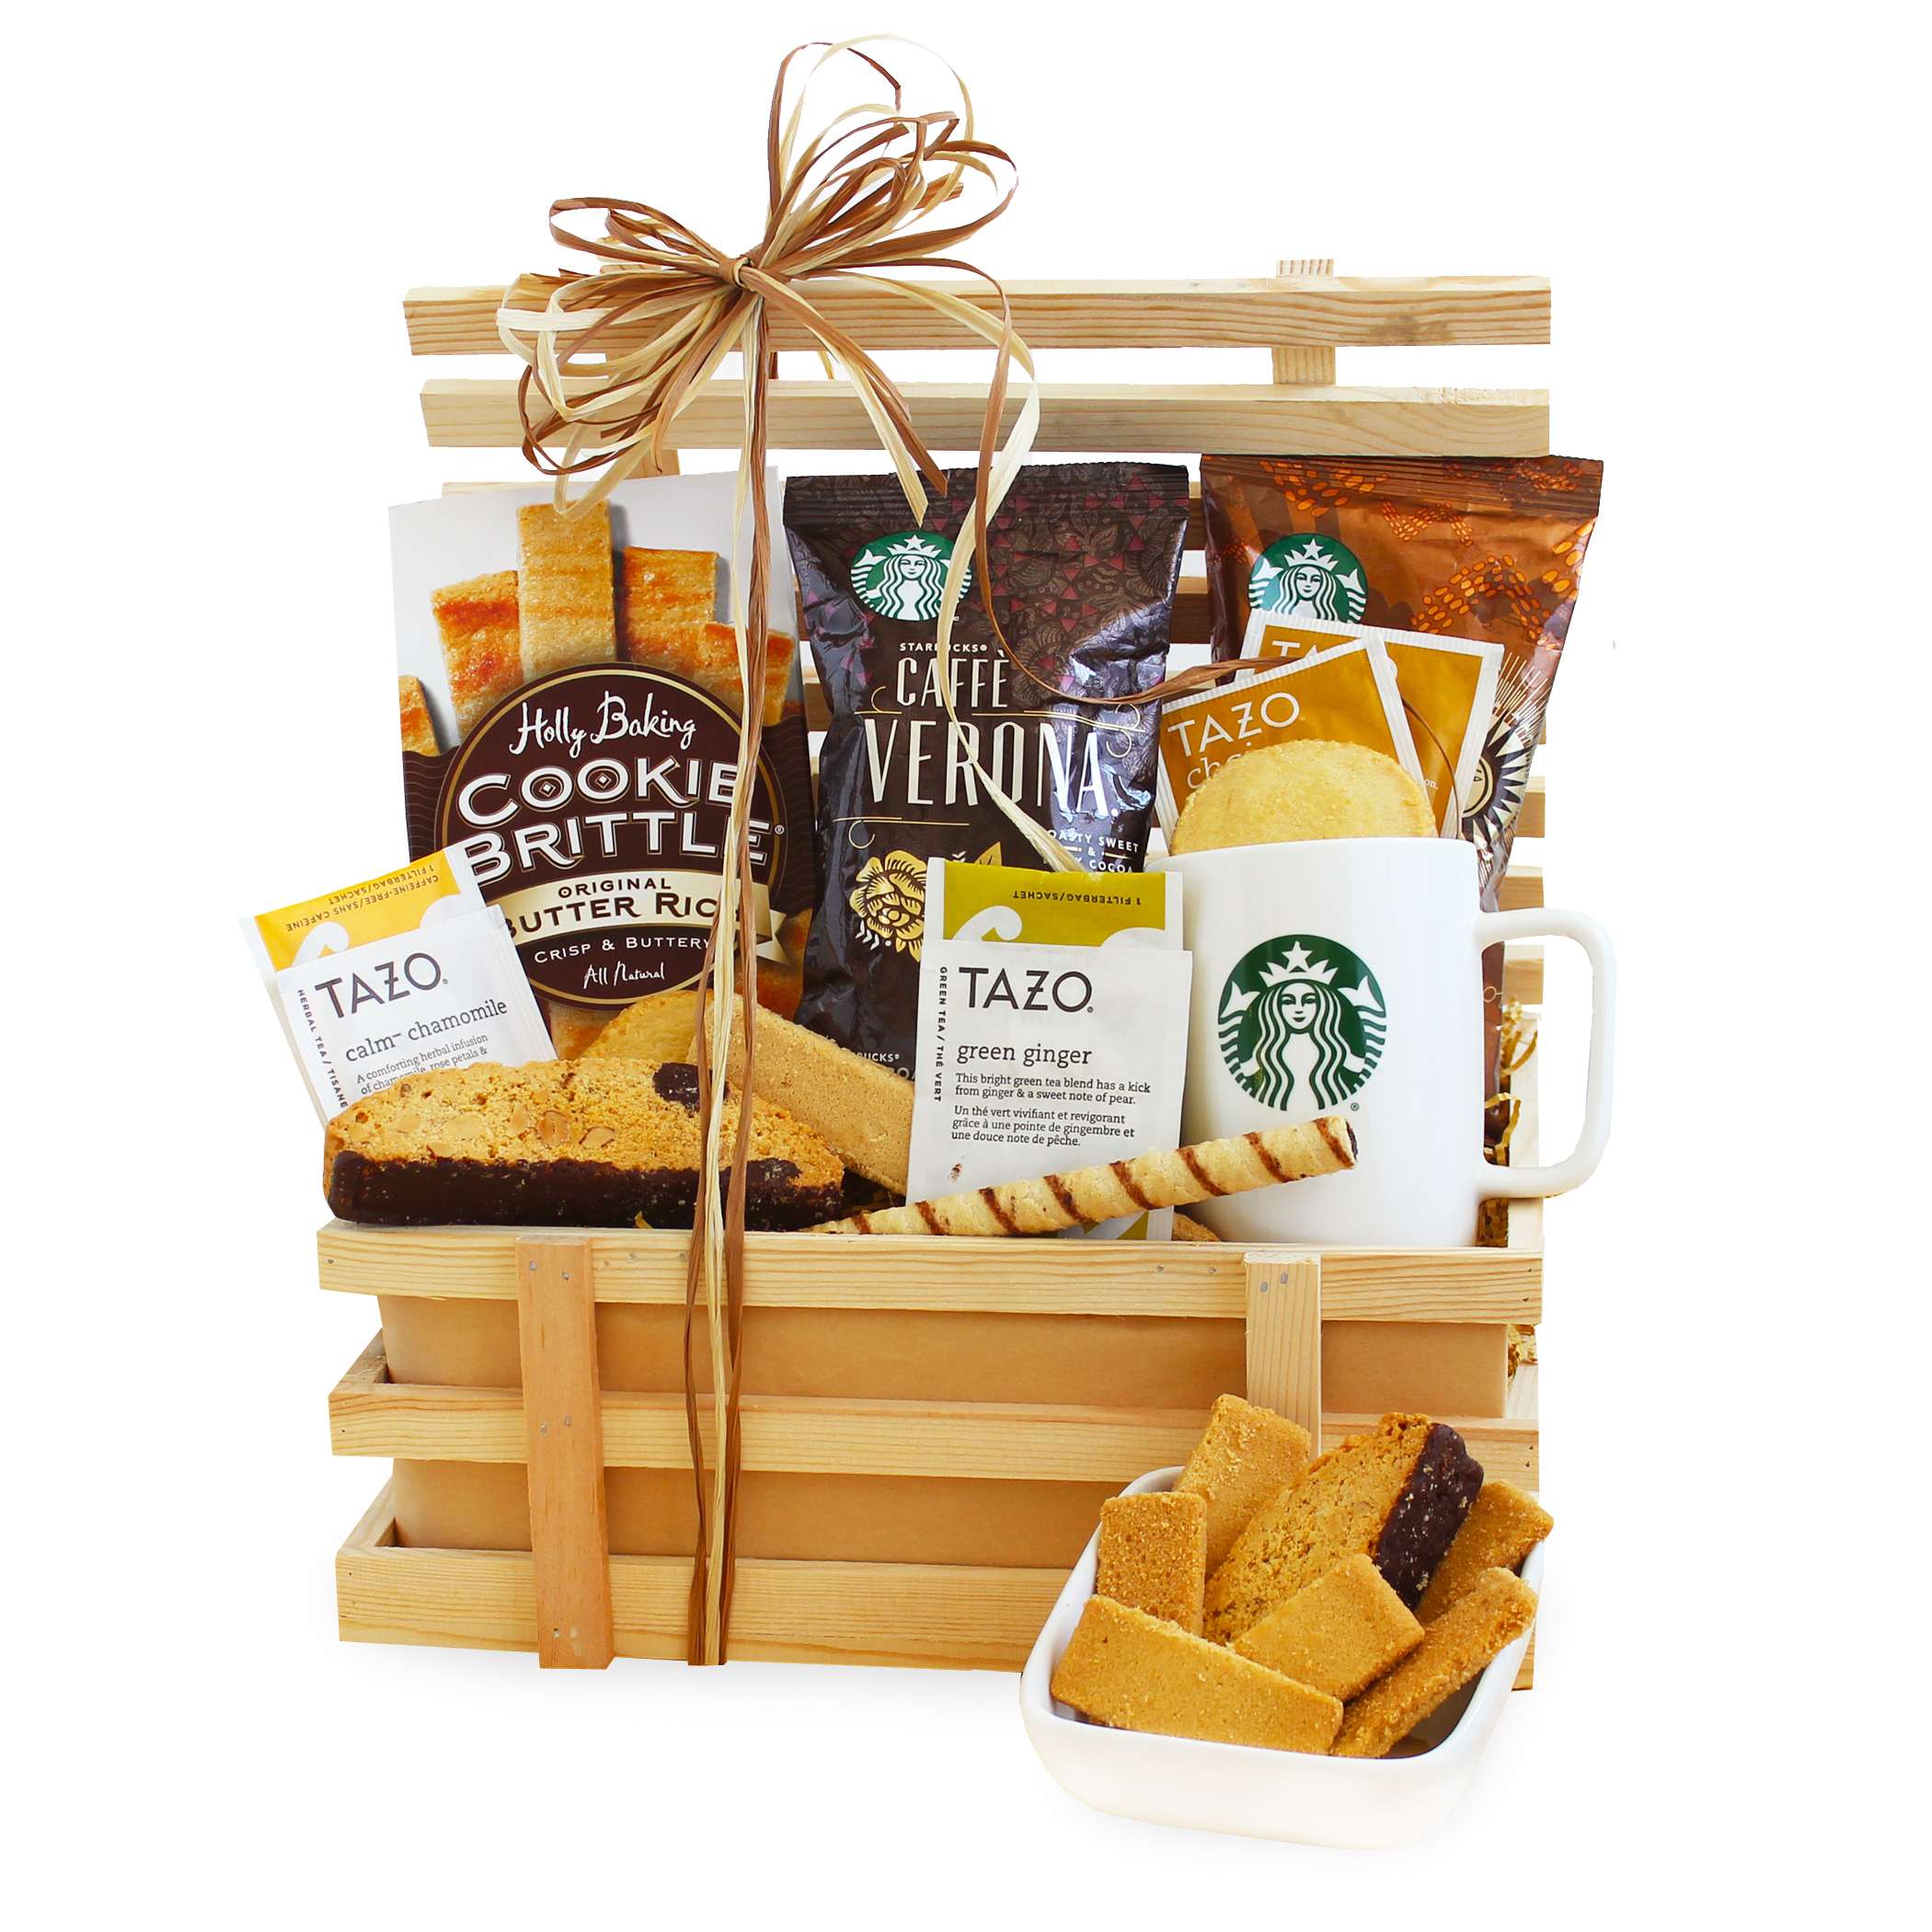 A California Delicious Country Coffee Crate Gift Basket with Single-serve Starbucks Coffee and Ceramic Mug for the Home